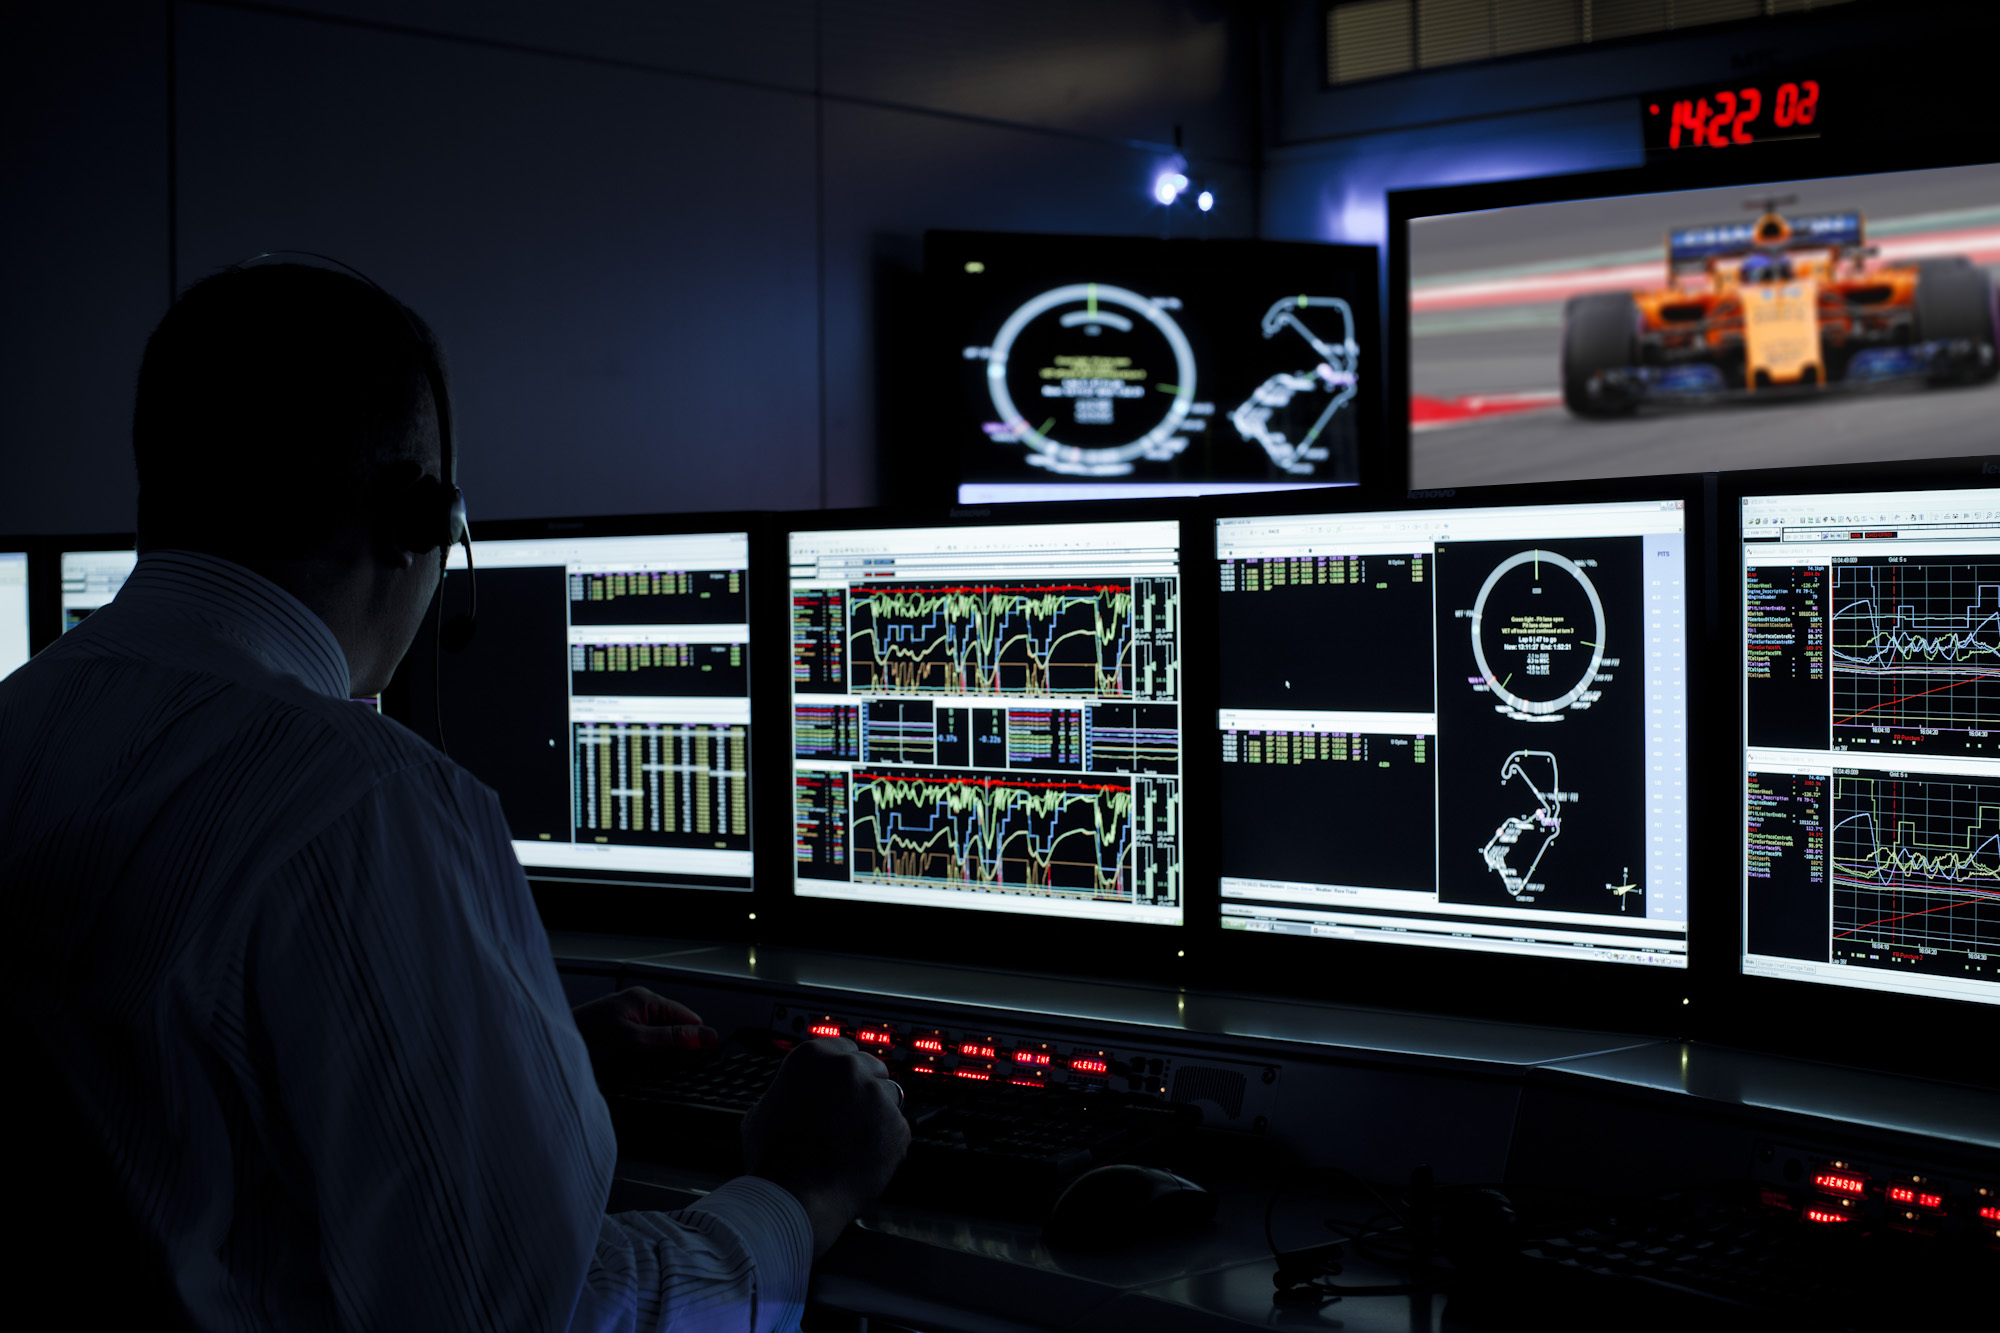 McLaren condition monitoring suite for F1 race cars' is shown in the picture.